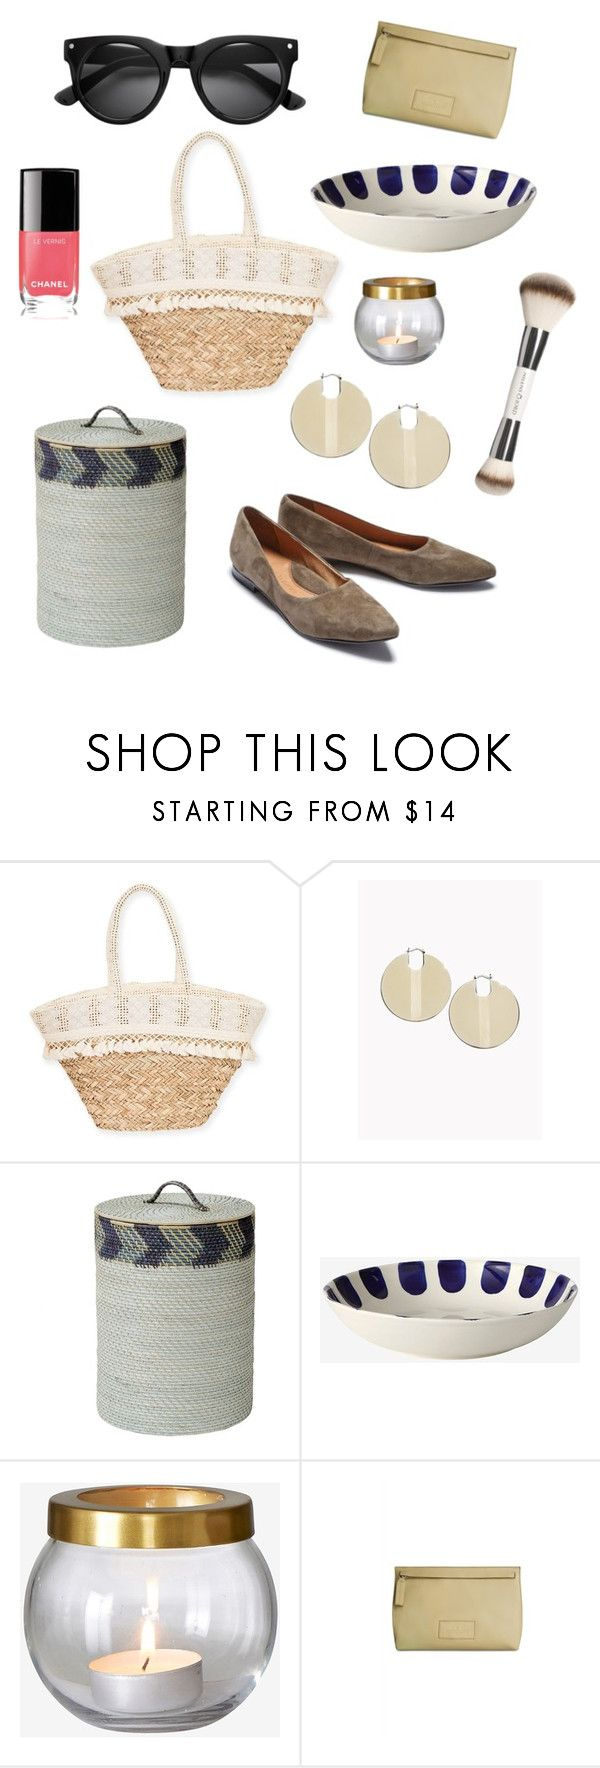 """En tvilling"" by frederikke-e ❤ liked on Polyvore featuring Sun N' Sand, Designers Remix and H&M"